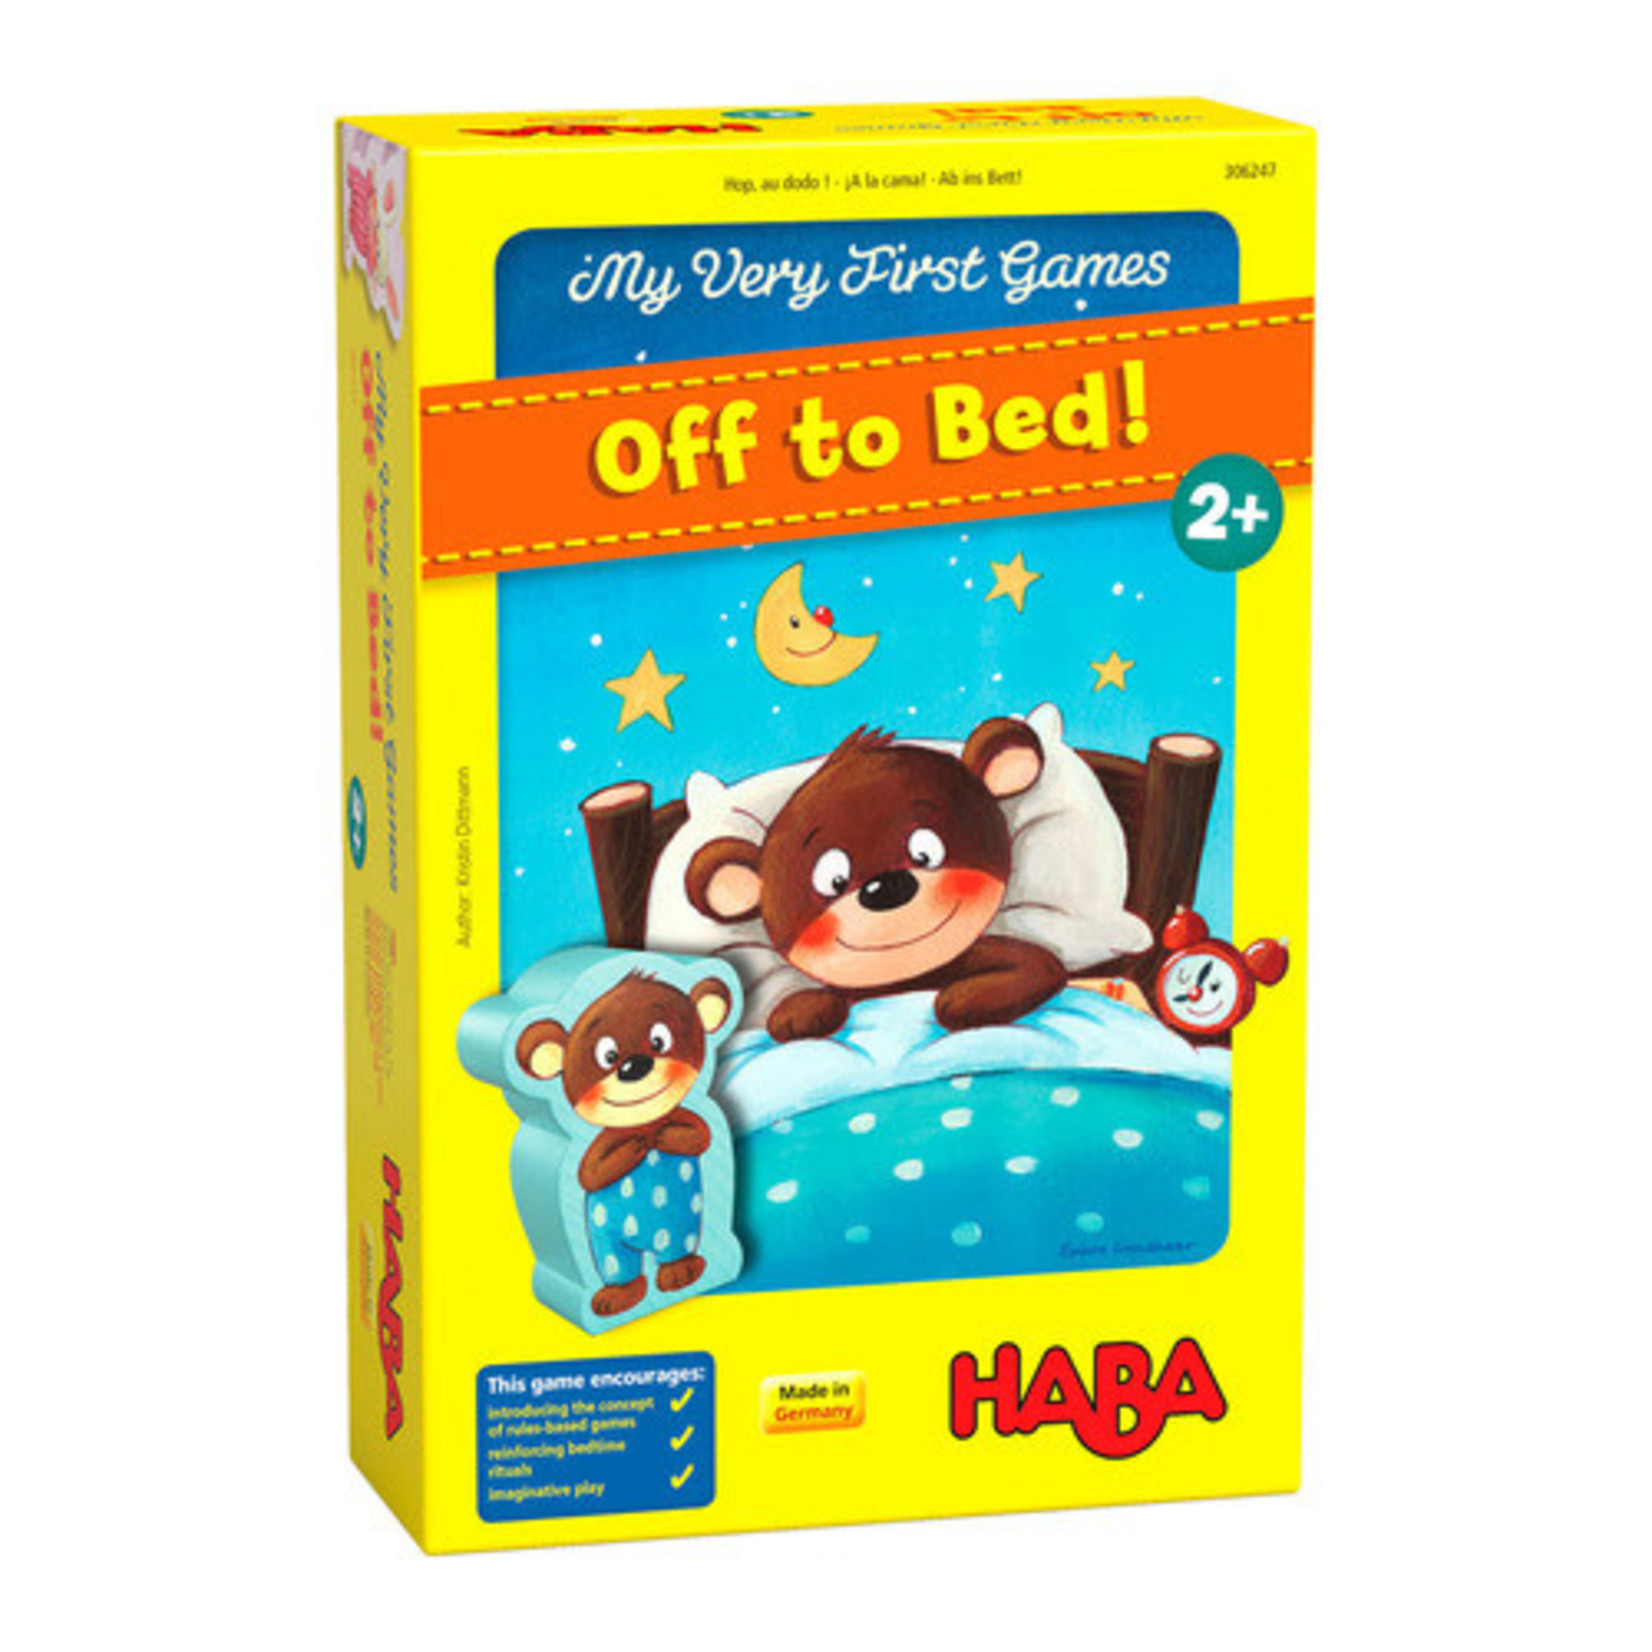 Haba Off to Bed